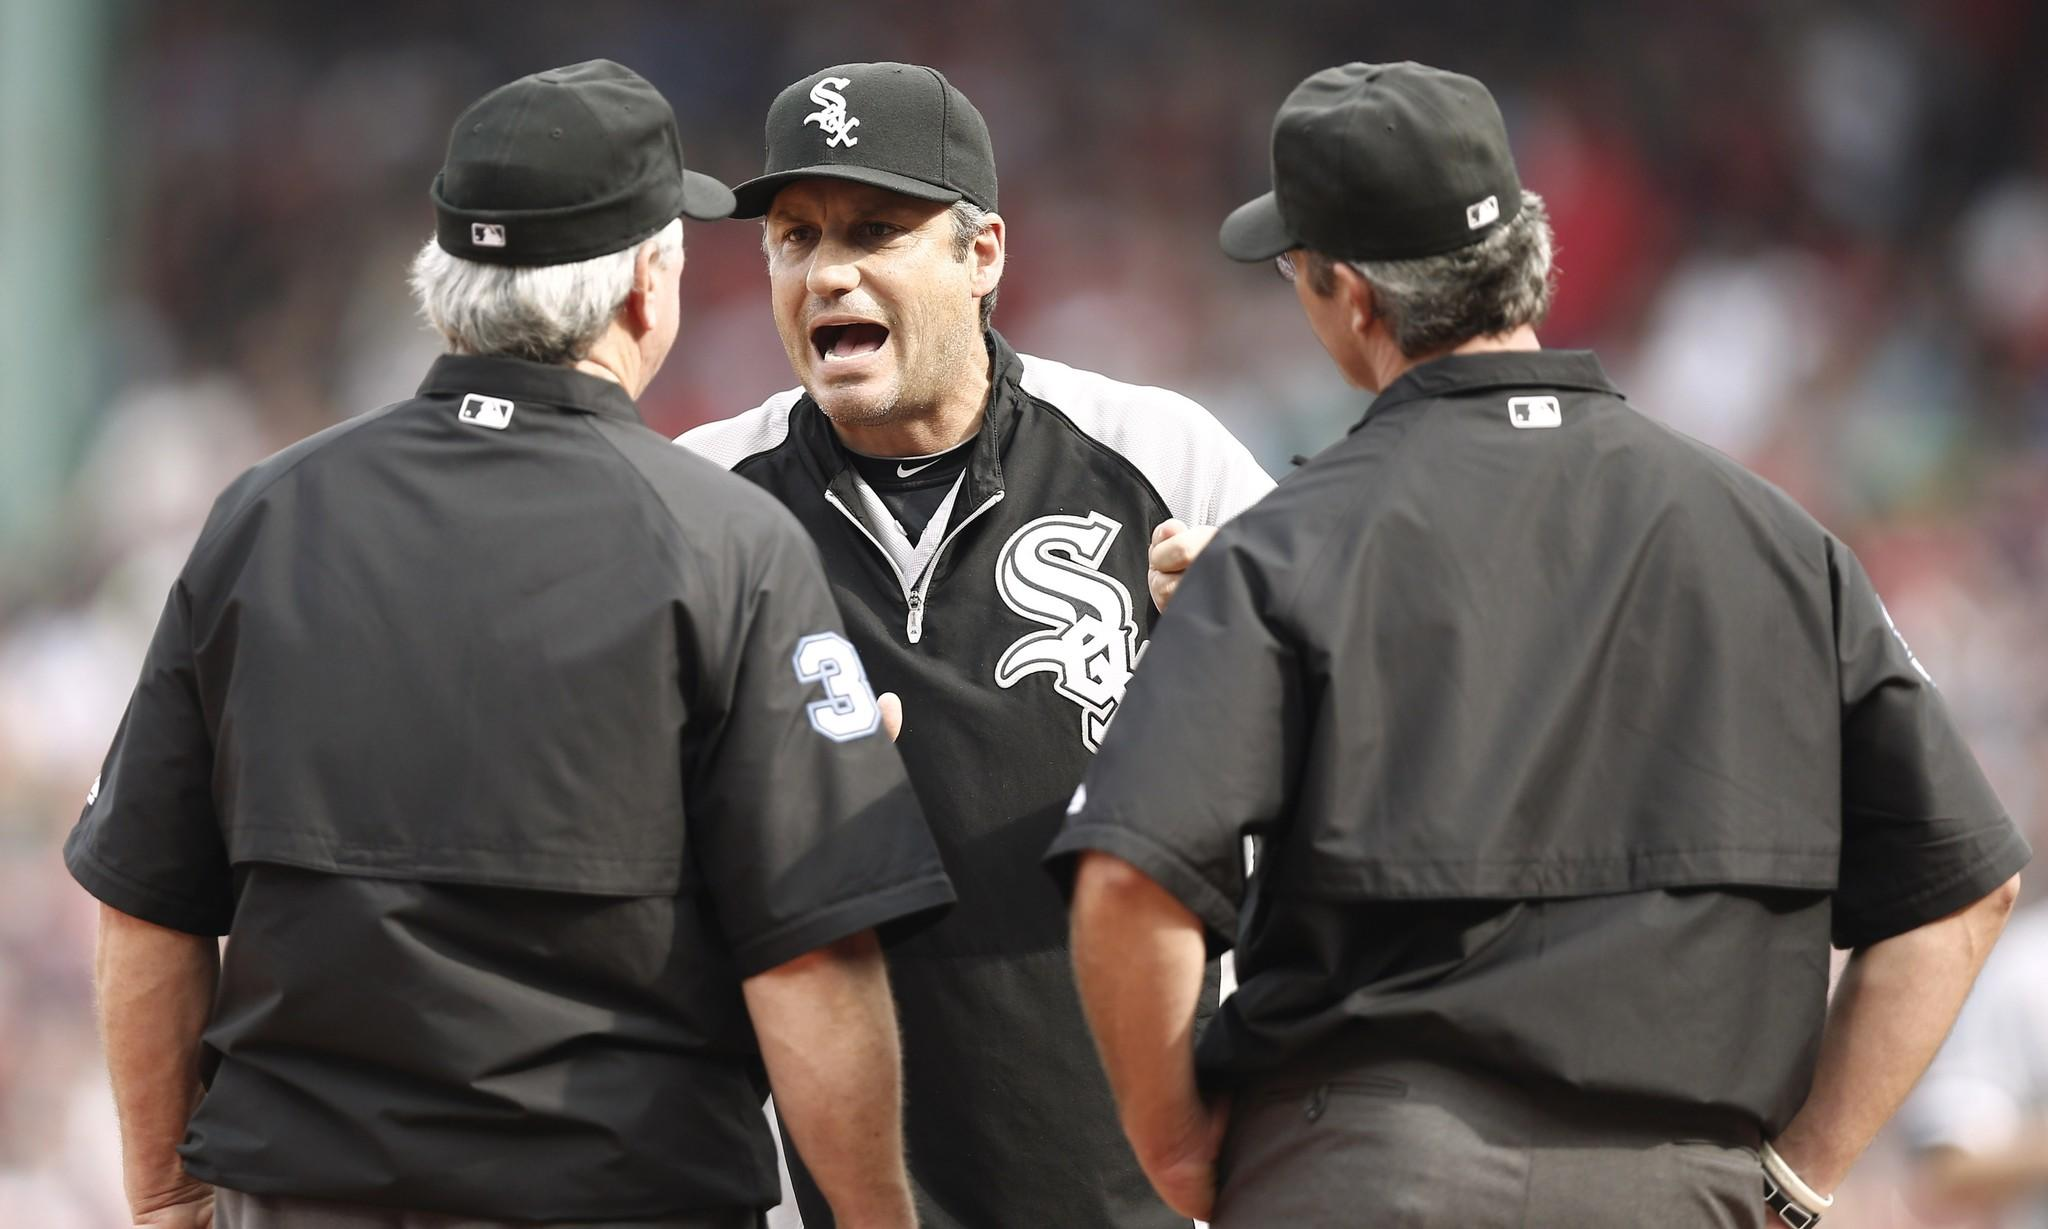 White Sox manager Robin Ventura argues with umpire Dana DeMuth #32, left, and umpire Paul Nauert #39 about a close play at third.